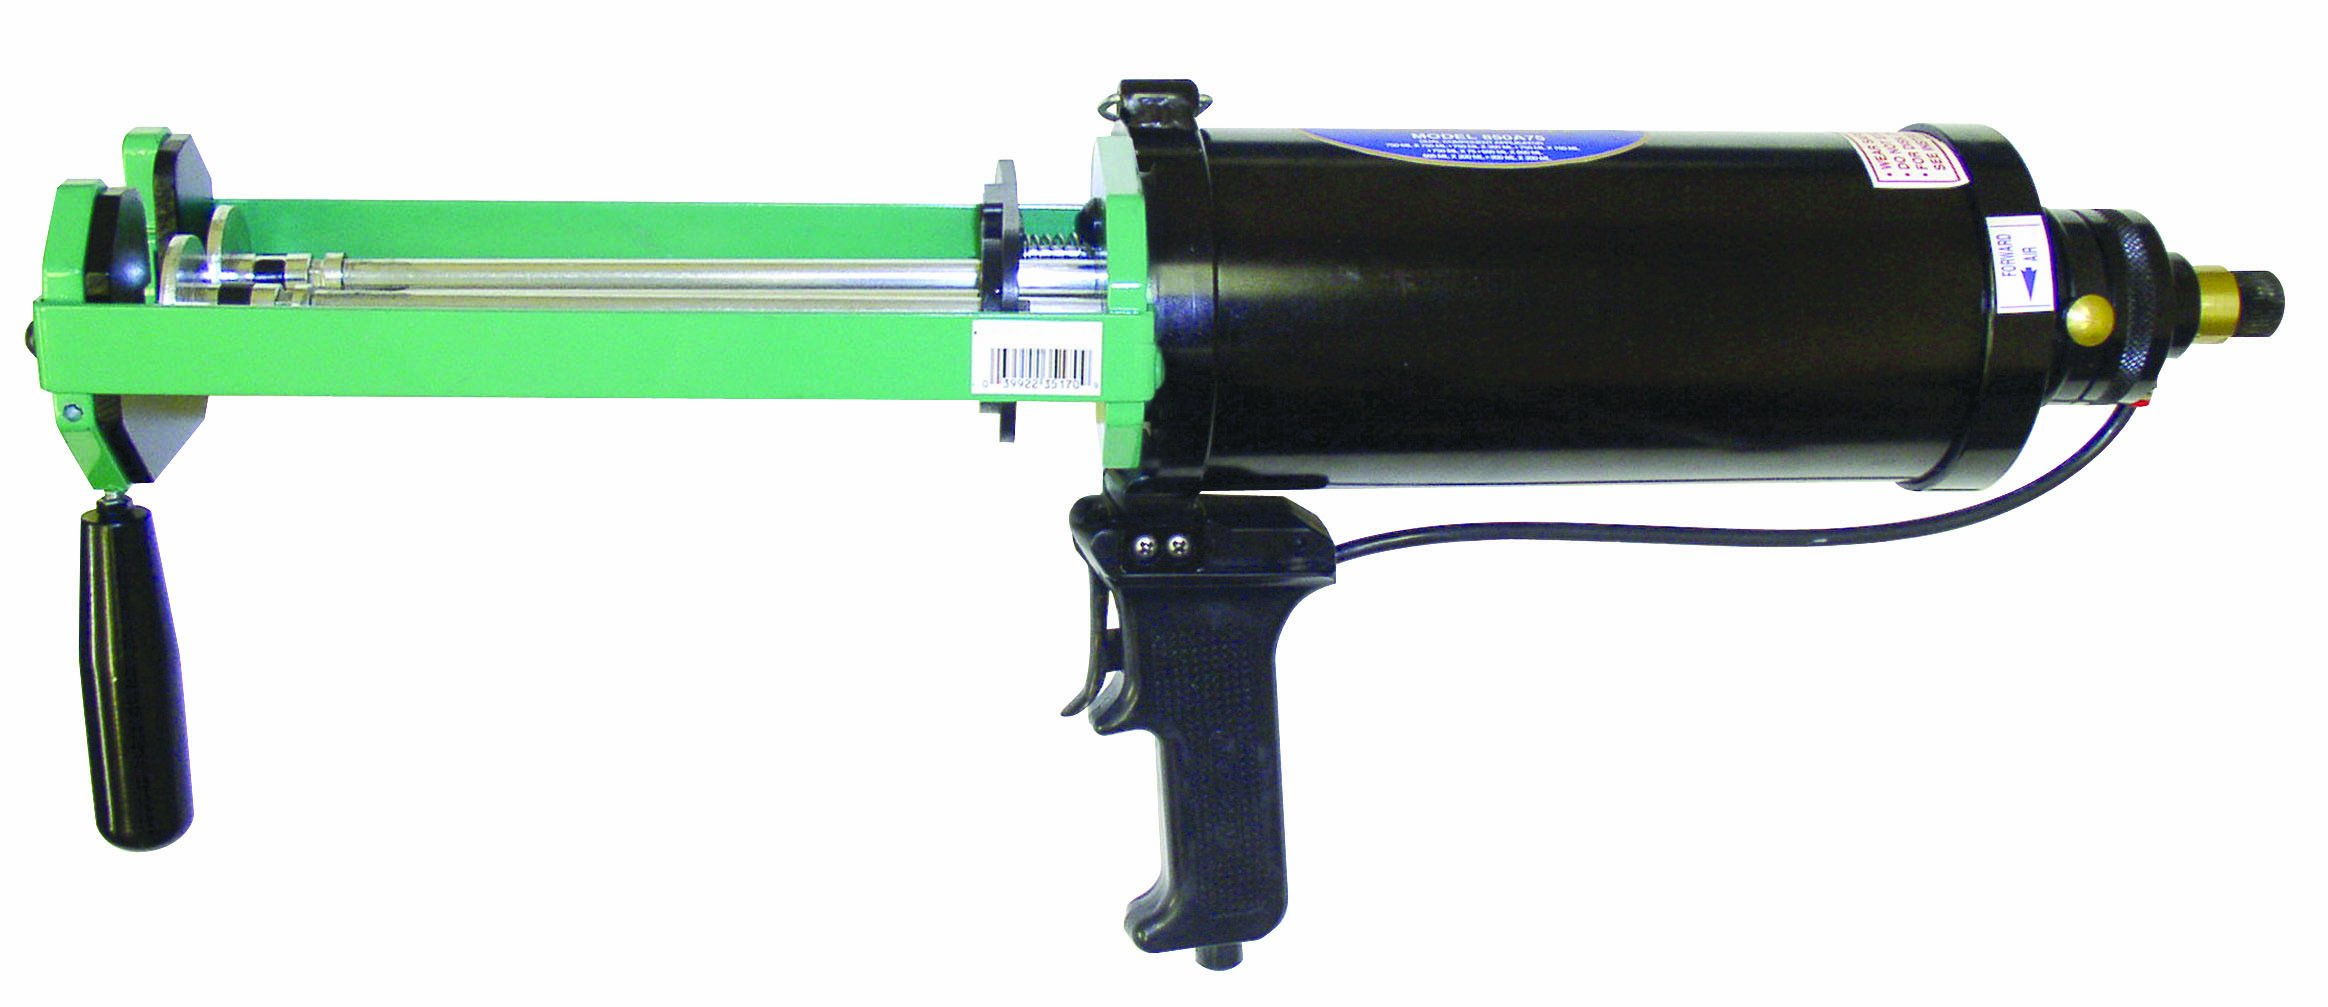 Newborn 850A30 Dual-Component Pneumatic Applicator, 4'' Cylinder, for 300 mL x 300 mL Cartridges, 100 psi